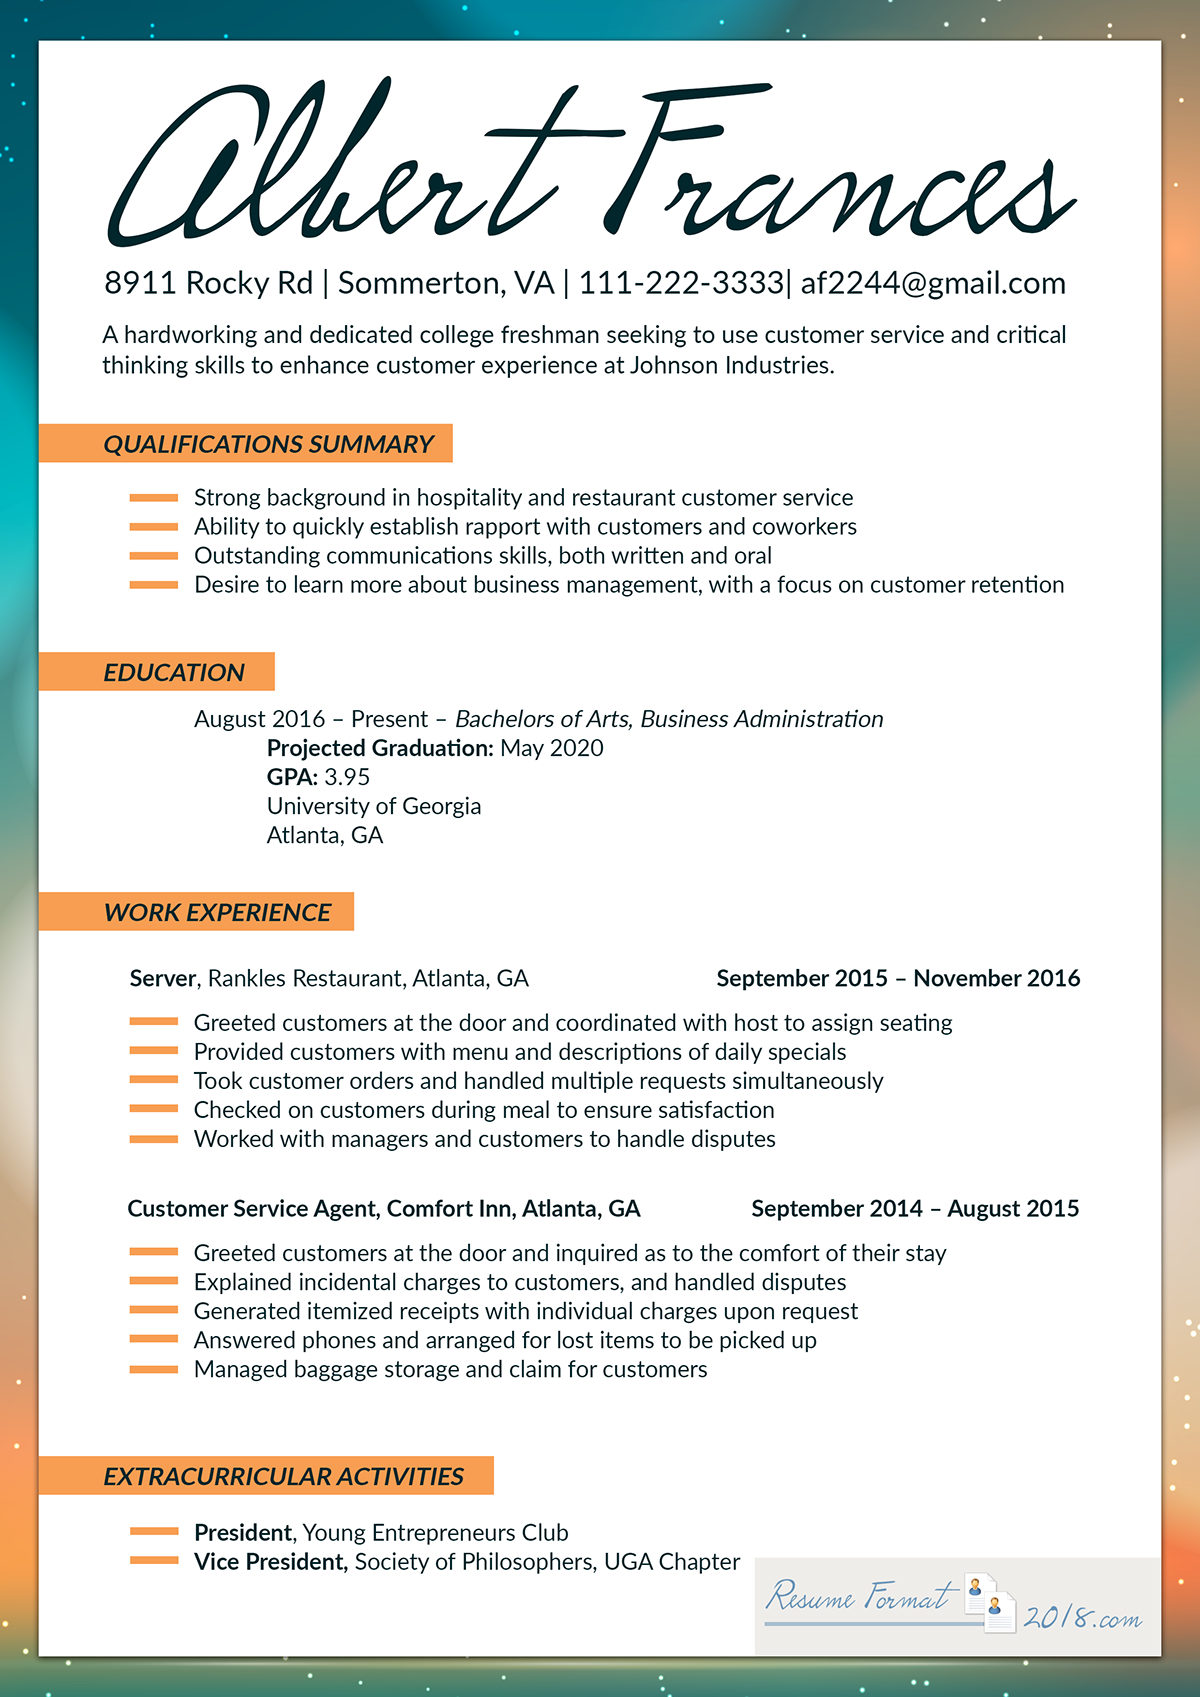 Resume 2018 Format.Best Resume Format 2018 For Fresher On Pantone Canvas Gallery